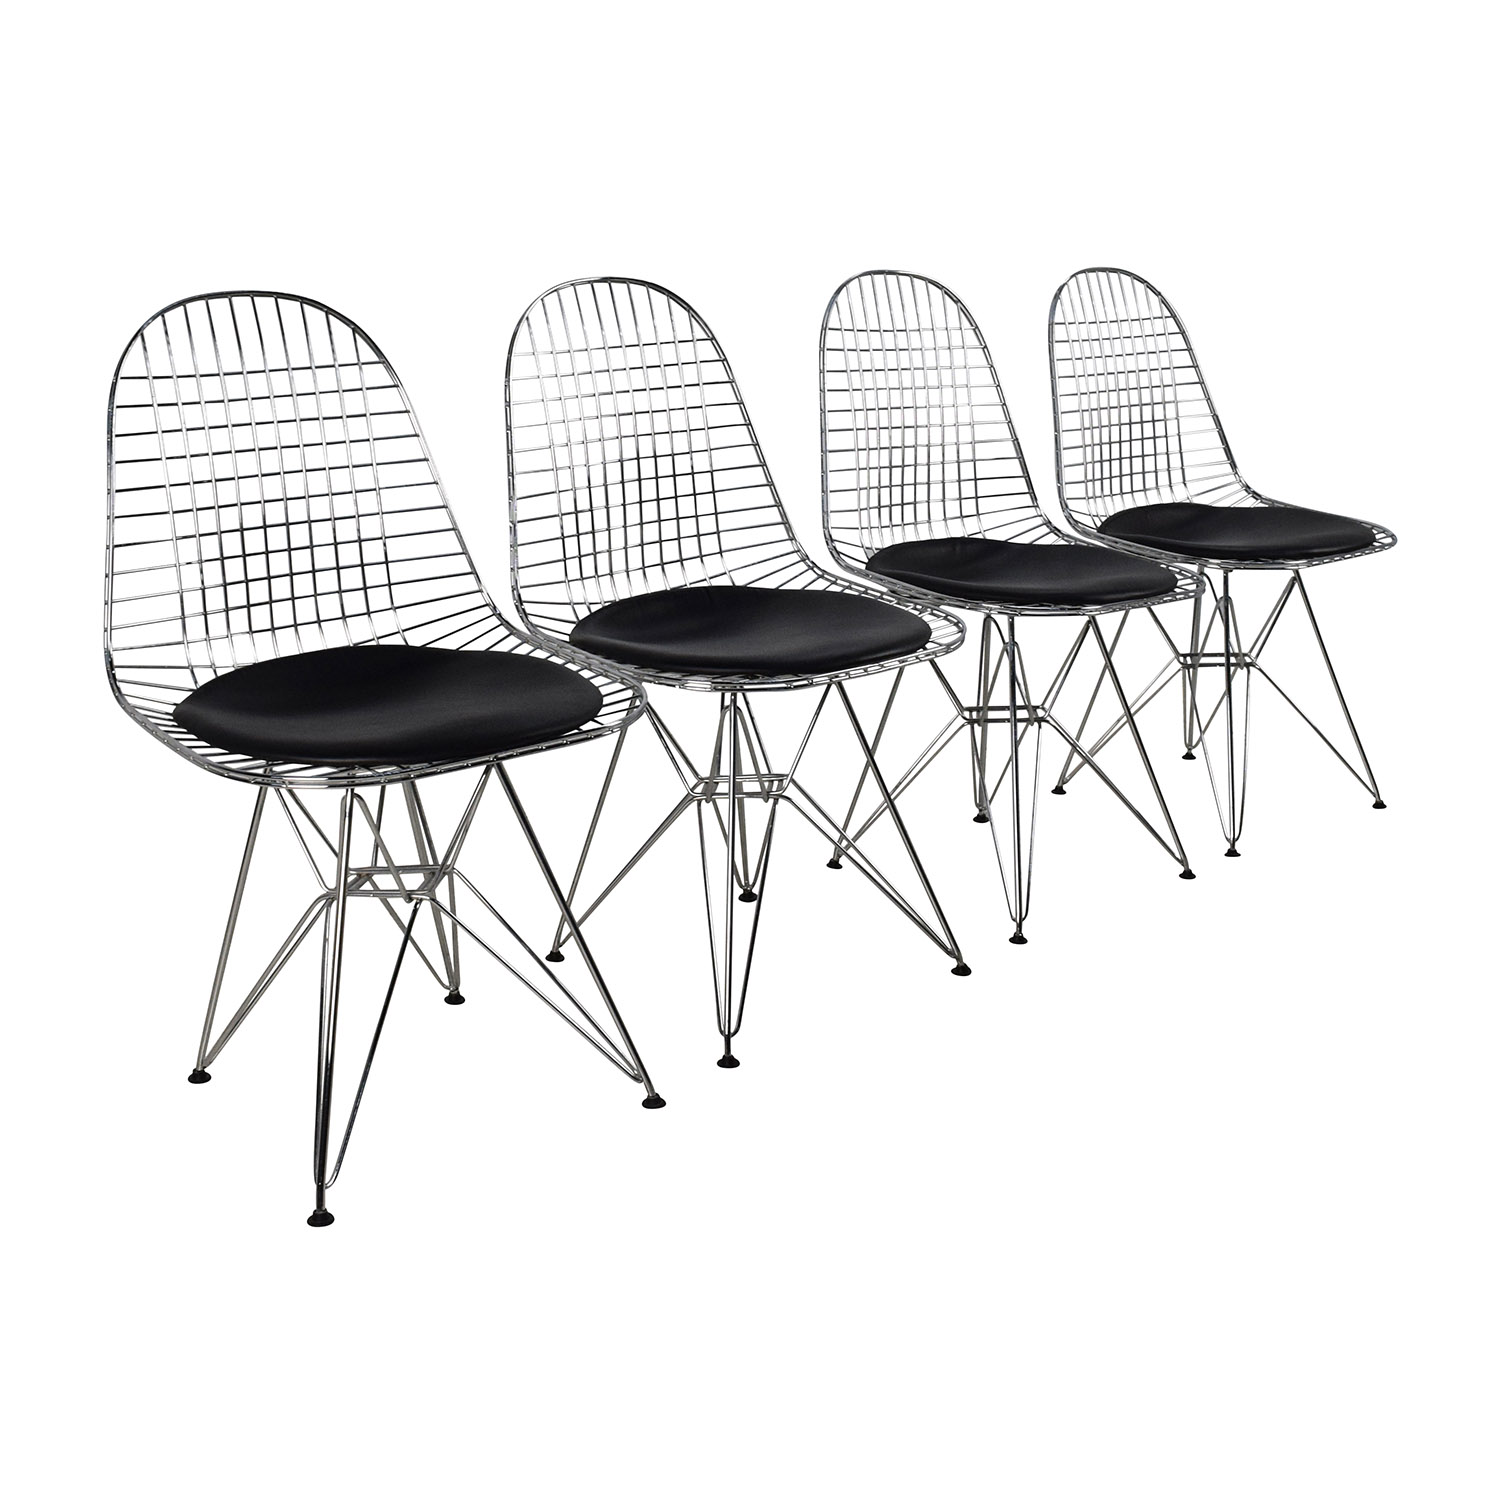 53% OFF Herman Miller Herman Miller Eames Wire Chair Set with